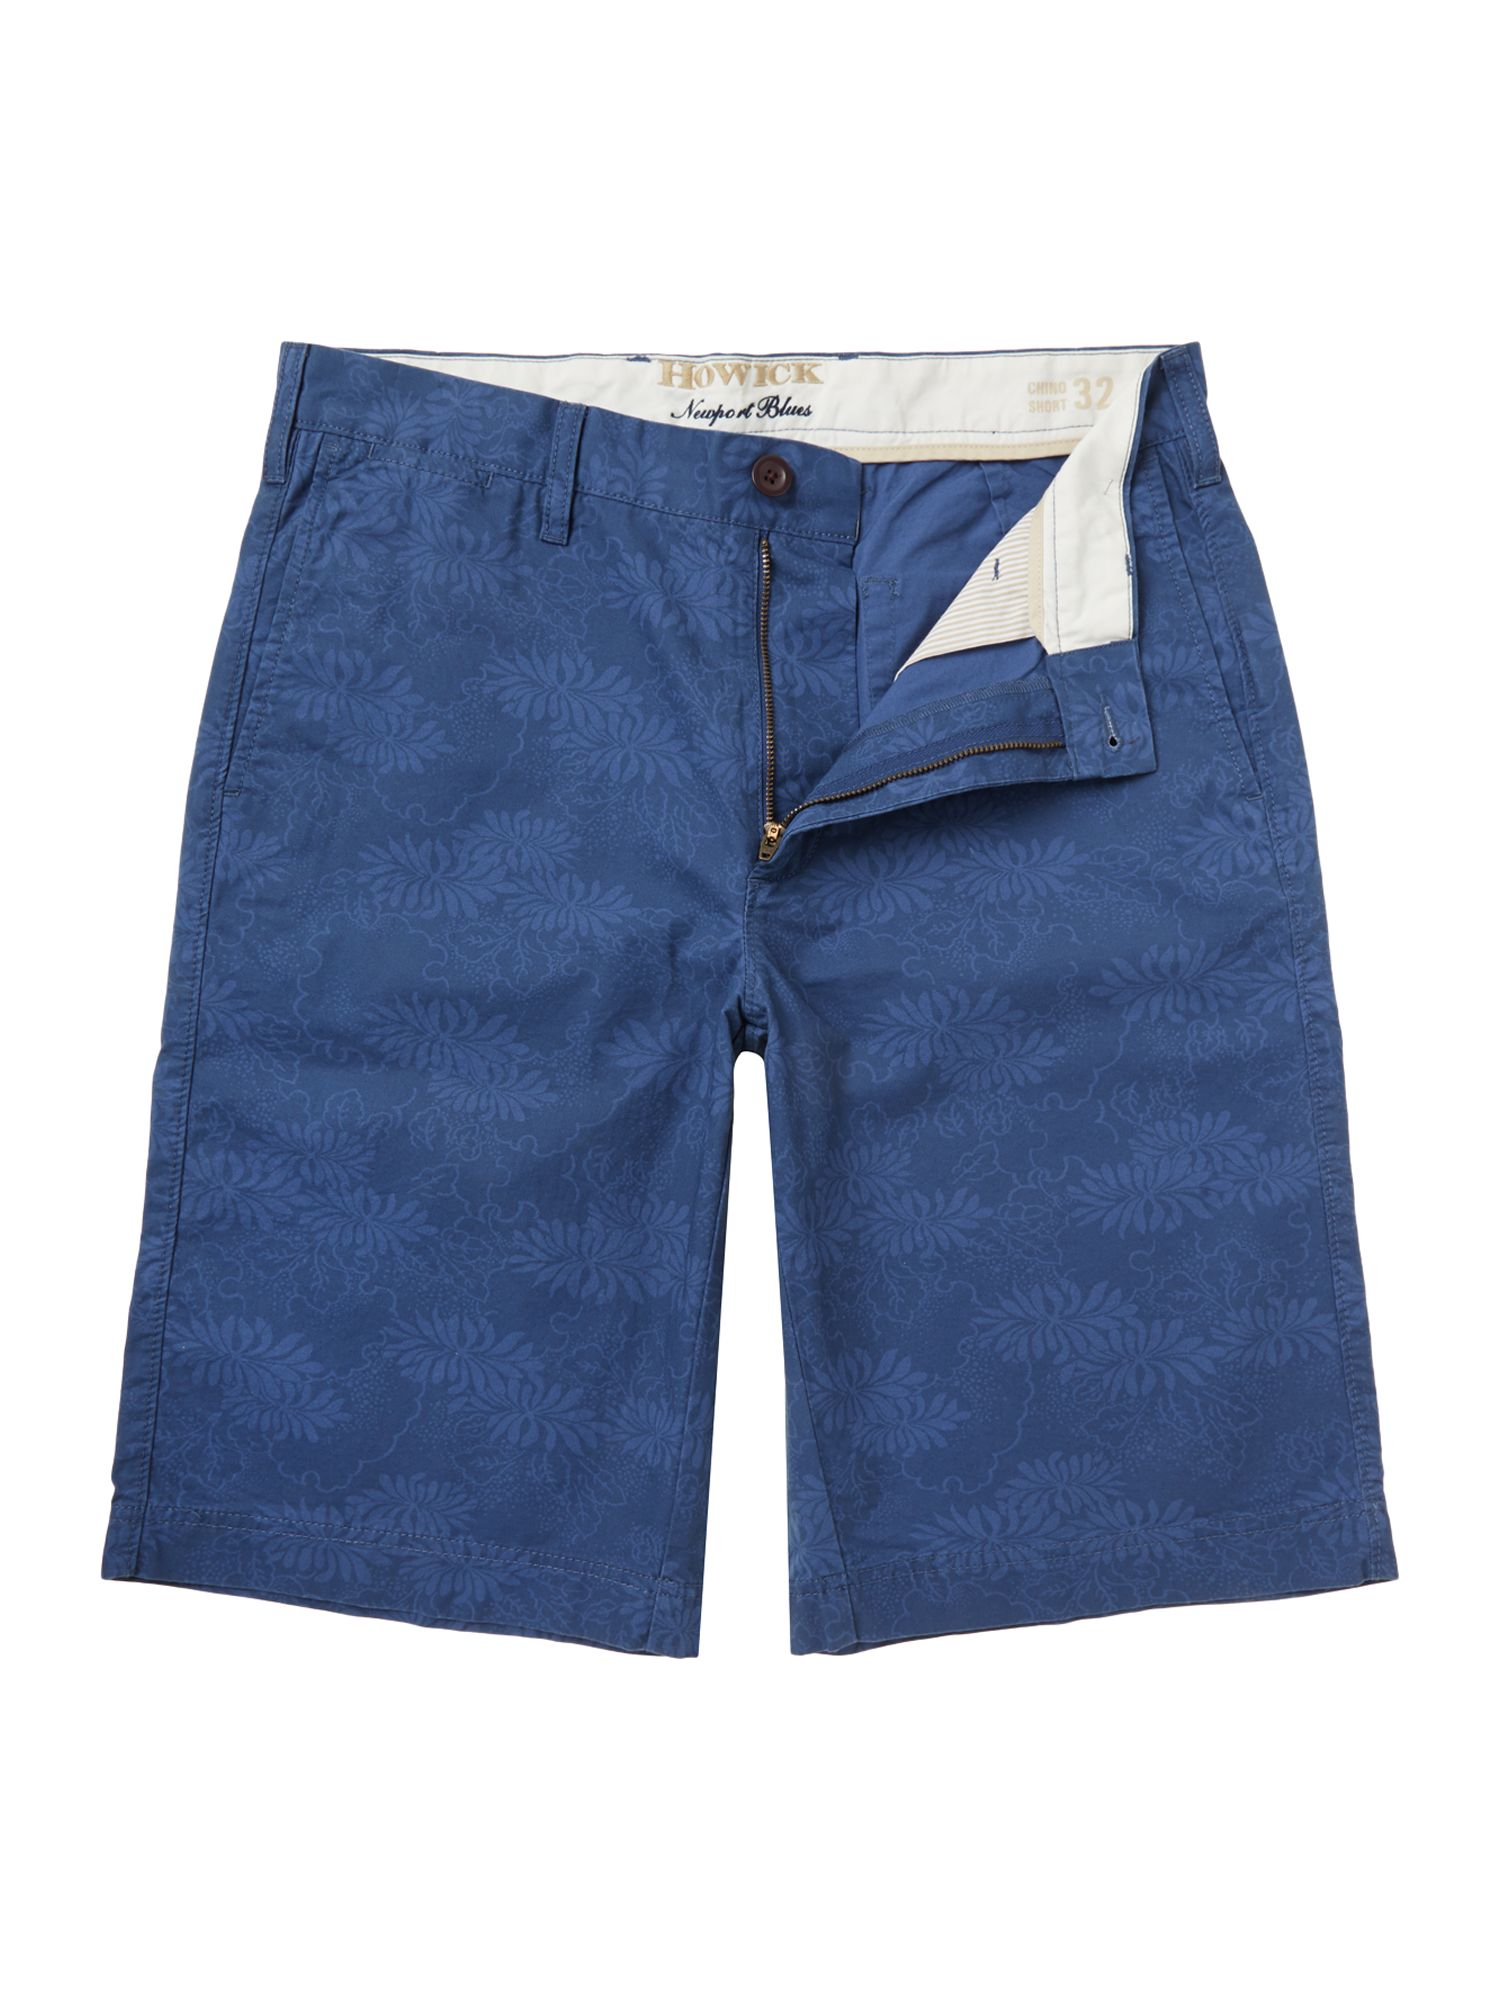 newport blues printed shorts